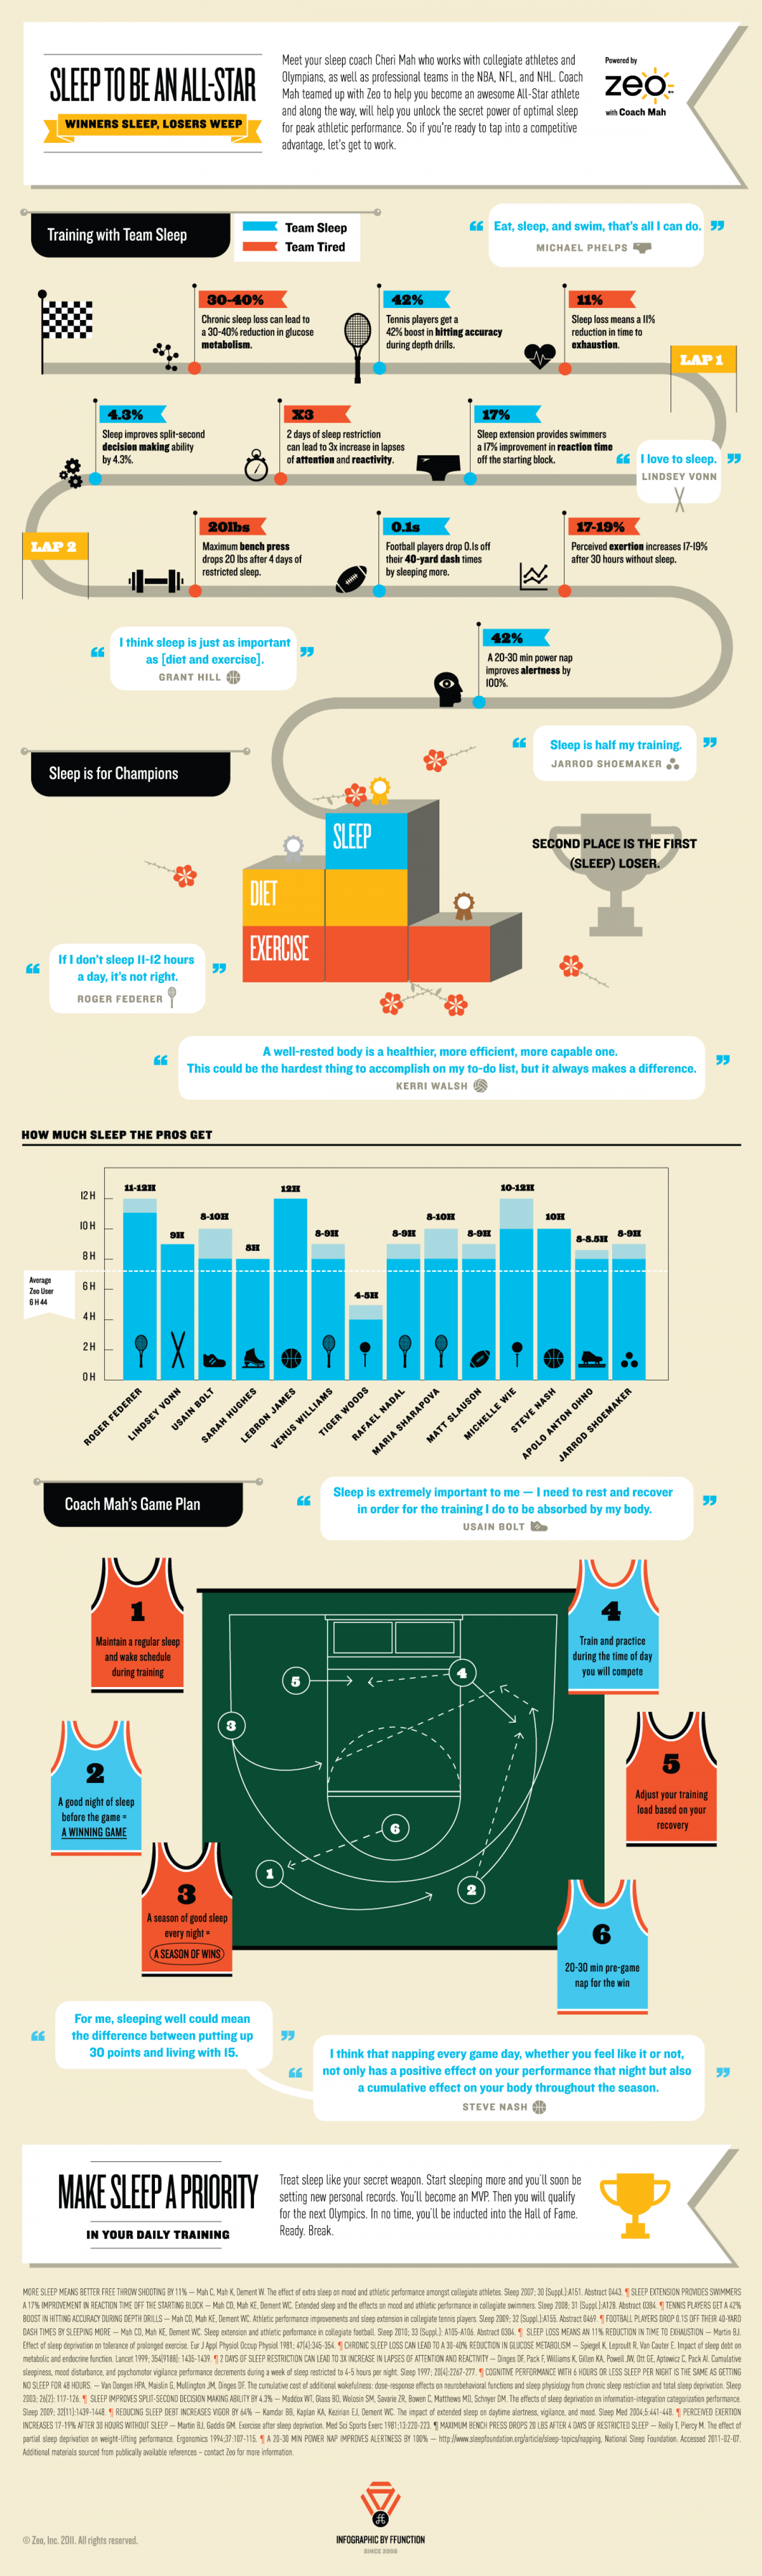 Sleep to be an All-Star Infographic